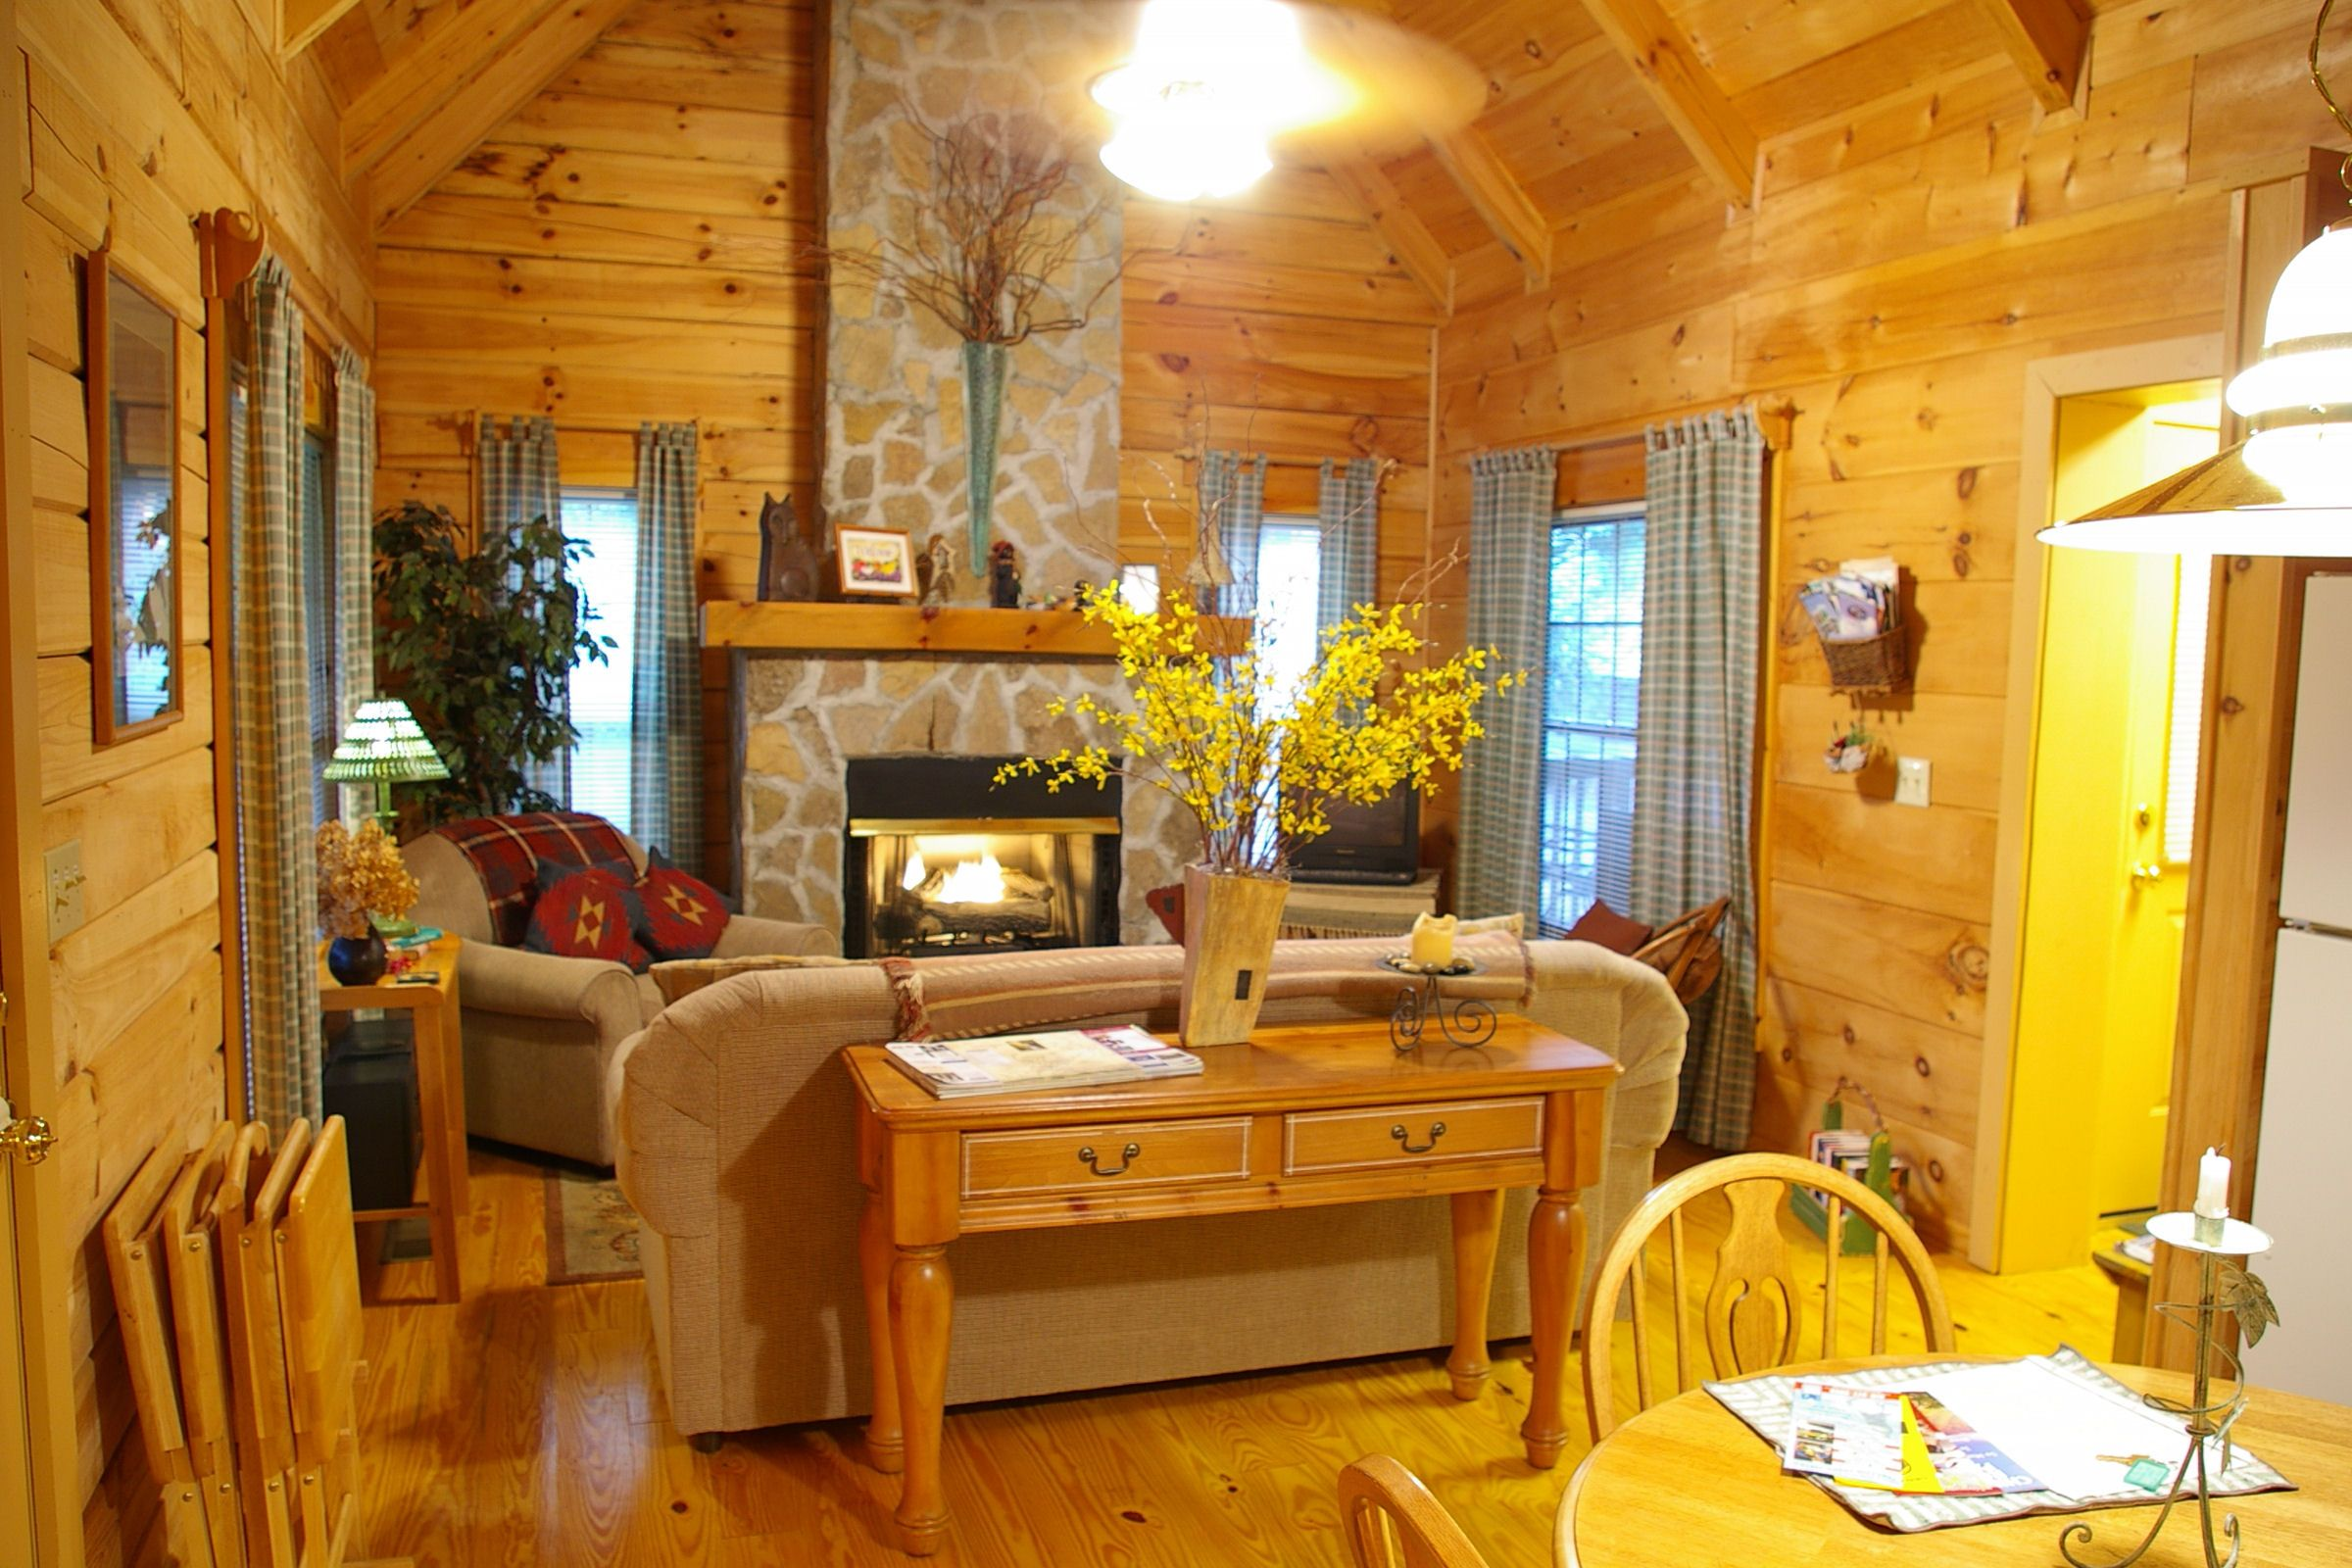 rentals boone carolina cabins friendly s with for near skiing asheville pet sale north cabin tubs rental dog hot brevard nc